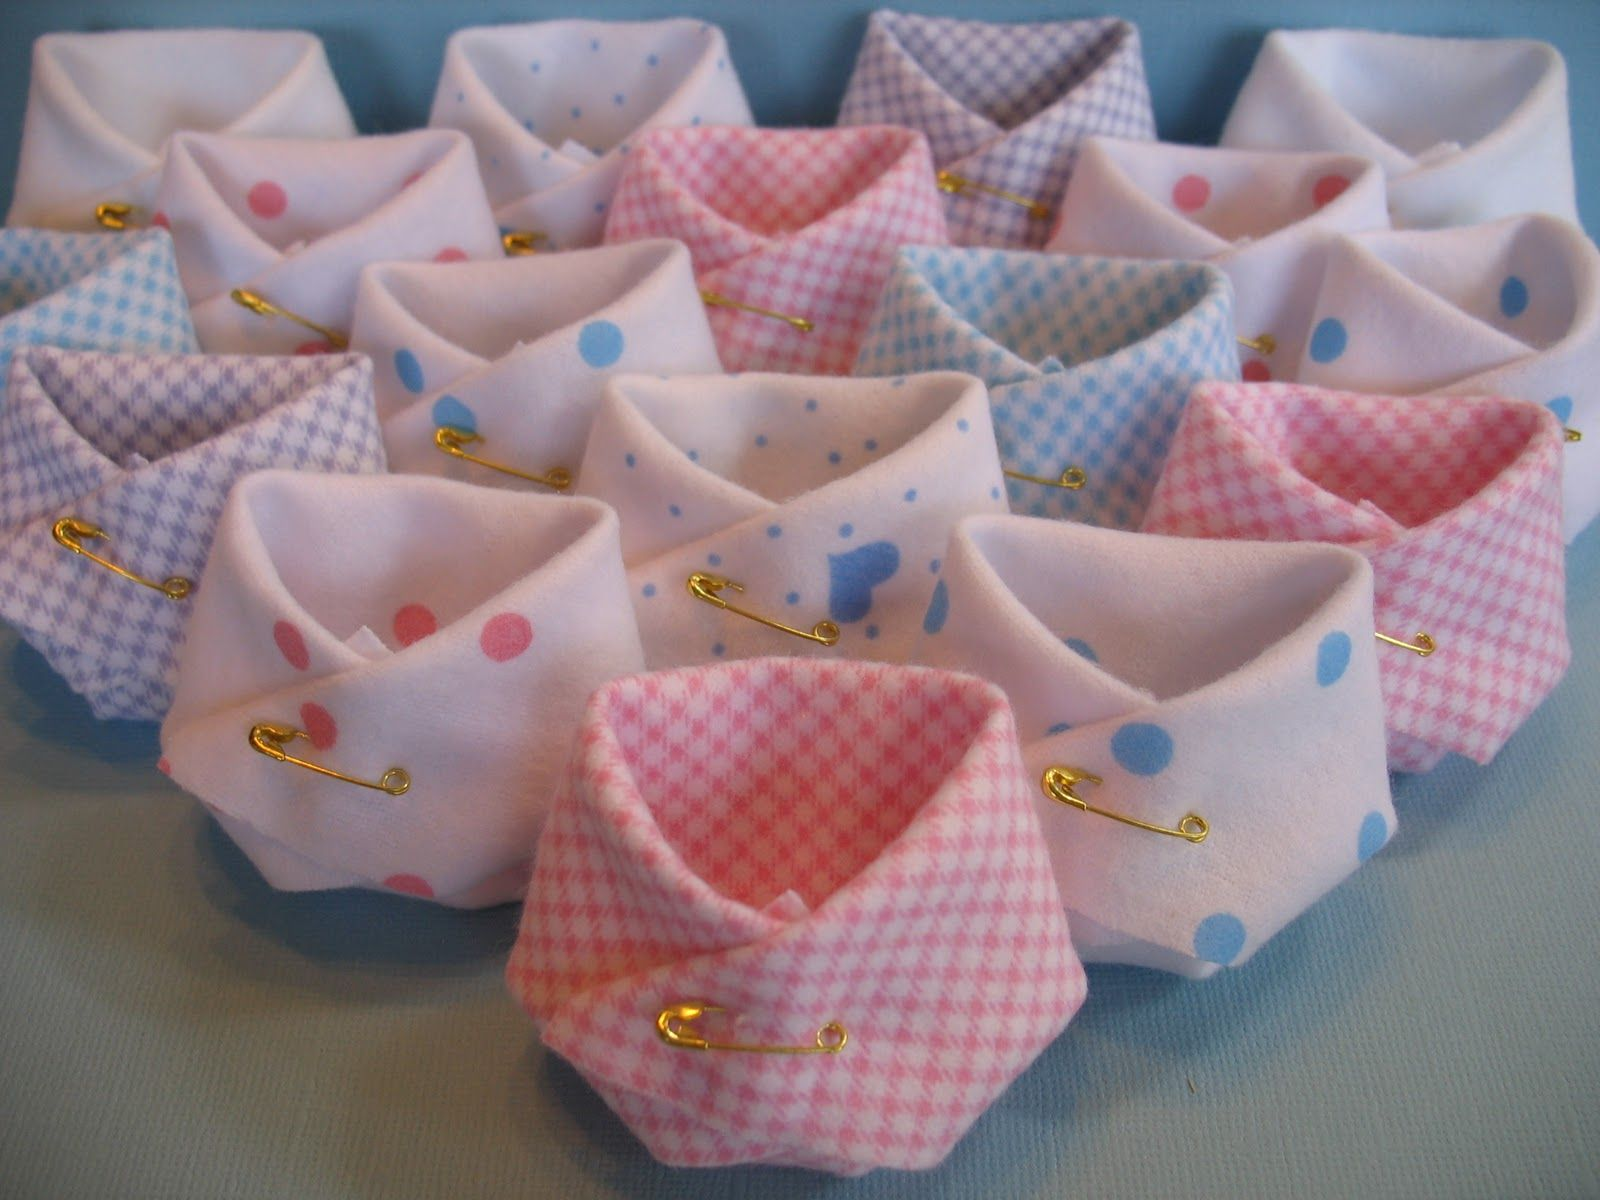 Baby Shower Favor Idea   Take A Triangle Of Fabric, Fold It Like A Cloth  Diaper And Pin It With A Small Pin. Fill With Pink Or Blue Mints.